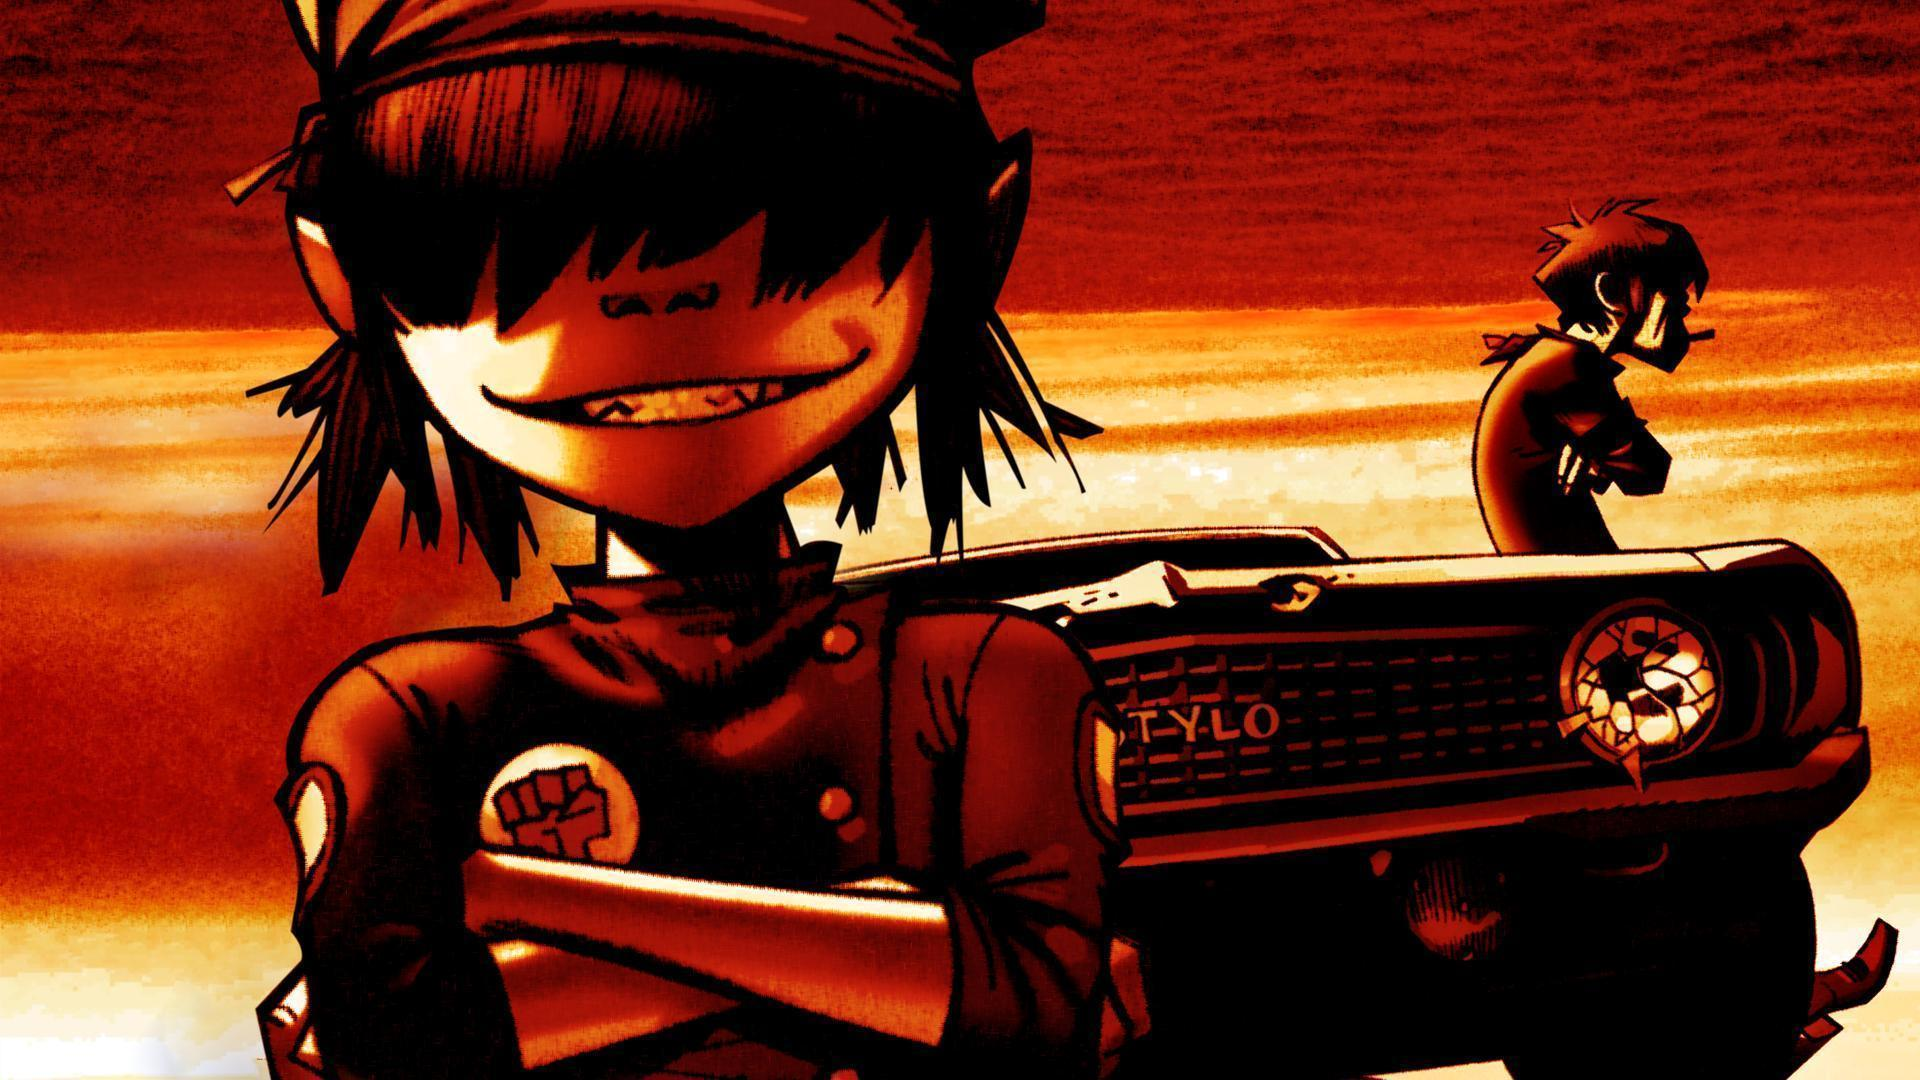 download wallpaper gorillaz desktop - photo #7